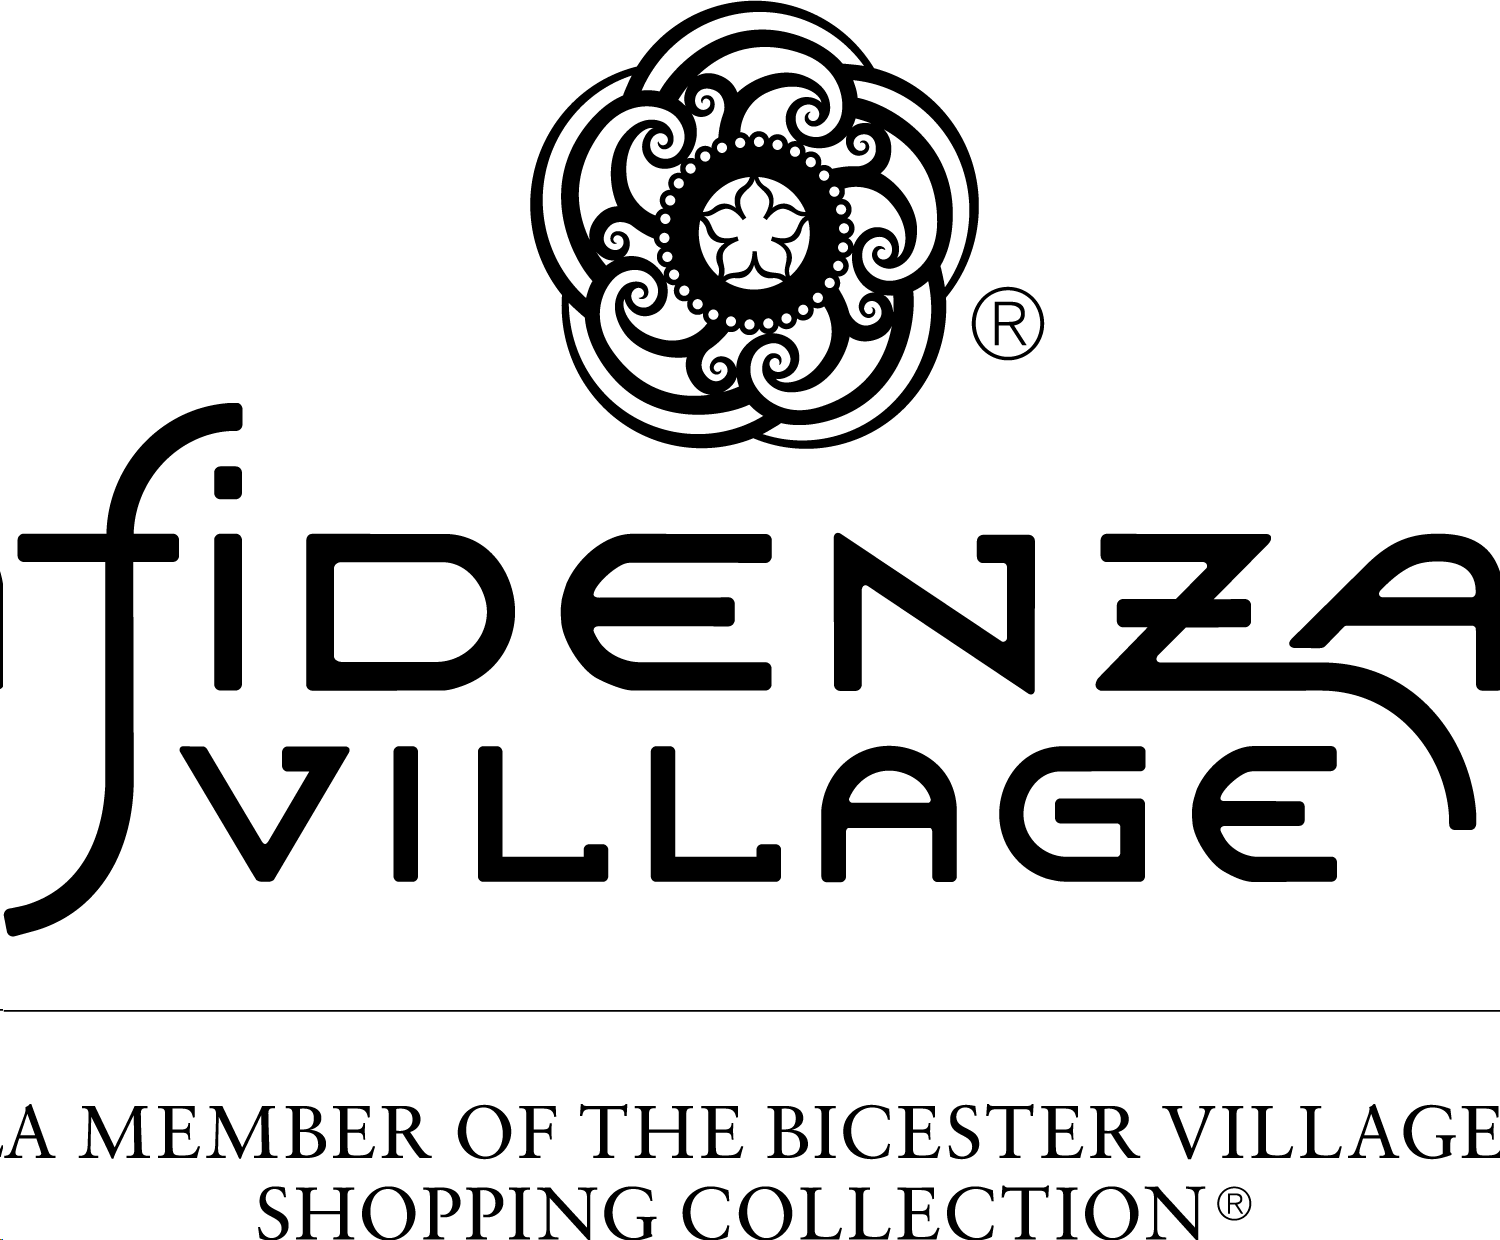 Value Retail Management Fidenza Village Srl